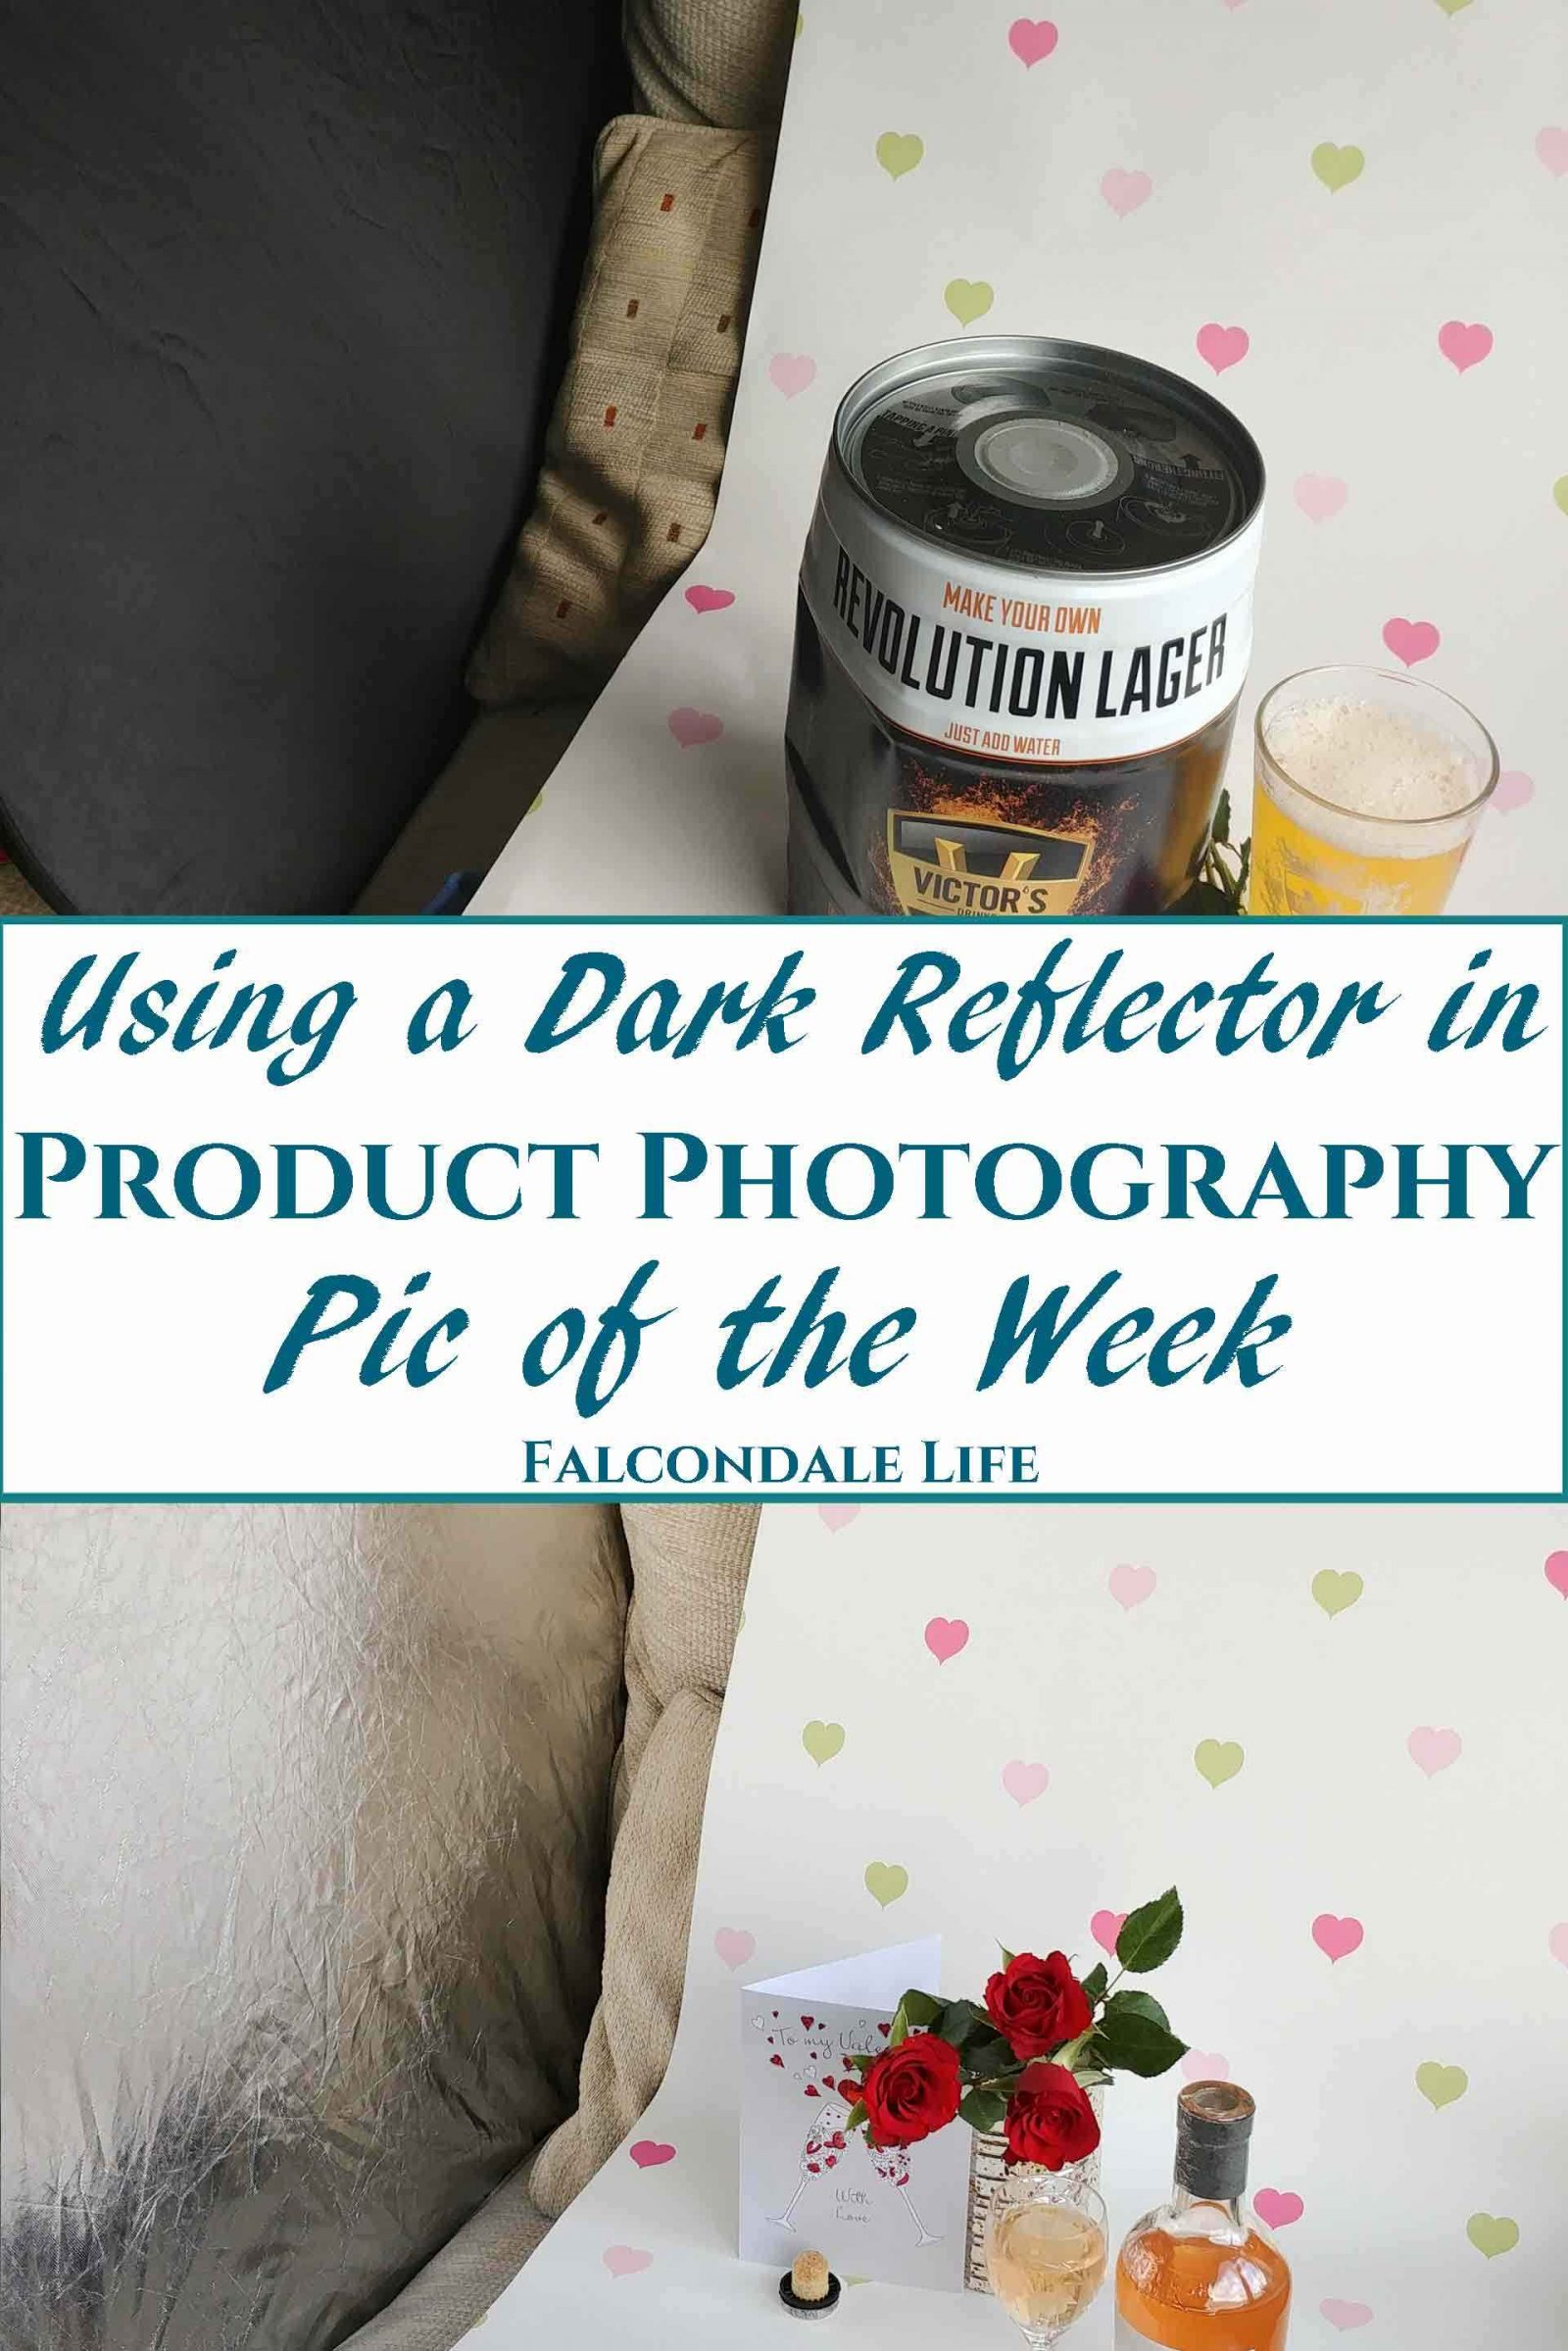 Using a dark reflector in product photography - Pic of the week on Falcondale Life blog. A five way reflector is useful for photography by increasing the light in each setup. Find out how to use the dark side of a photography reflector and recommended uses for each side of the circular reflector. Photography tips with FalcondaleJan.